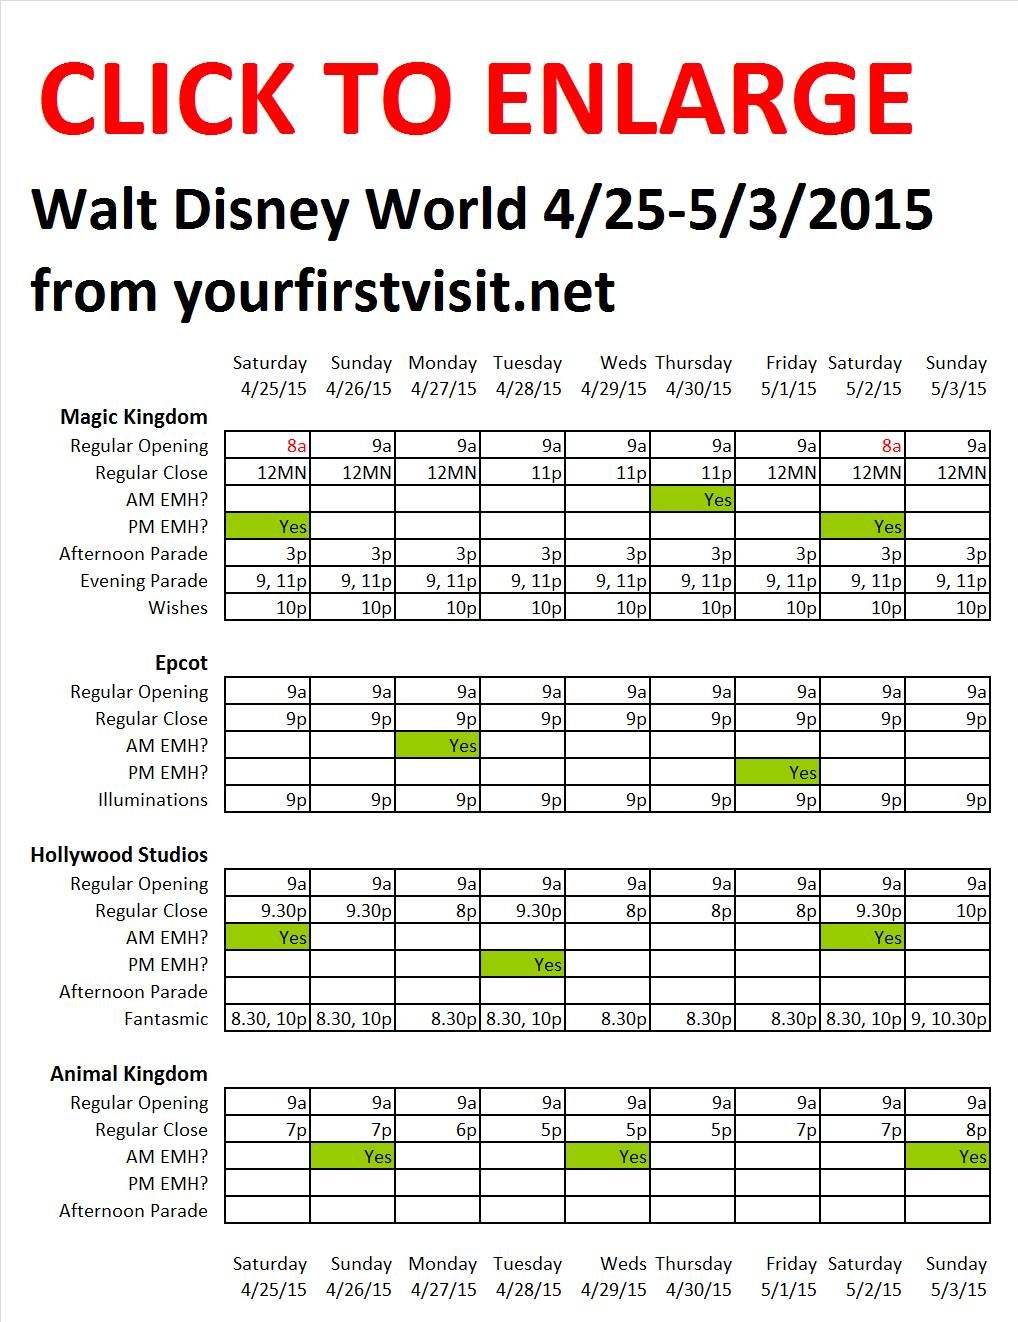 Disney World 4-25 to 5-3-2015 from yourfirstvisit.net